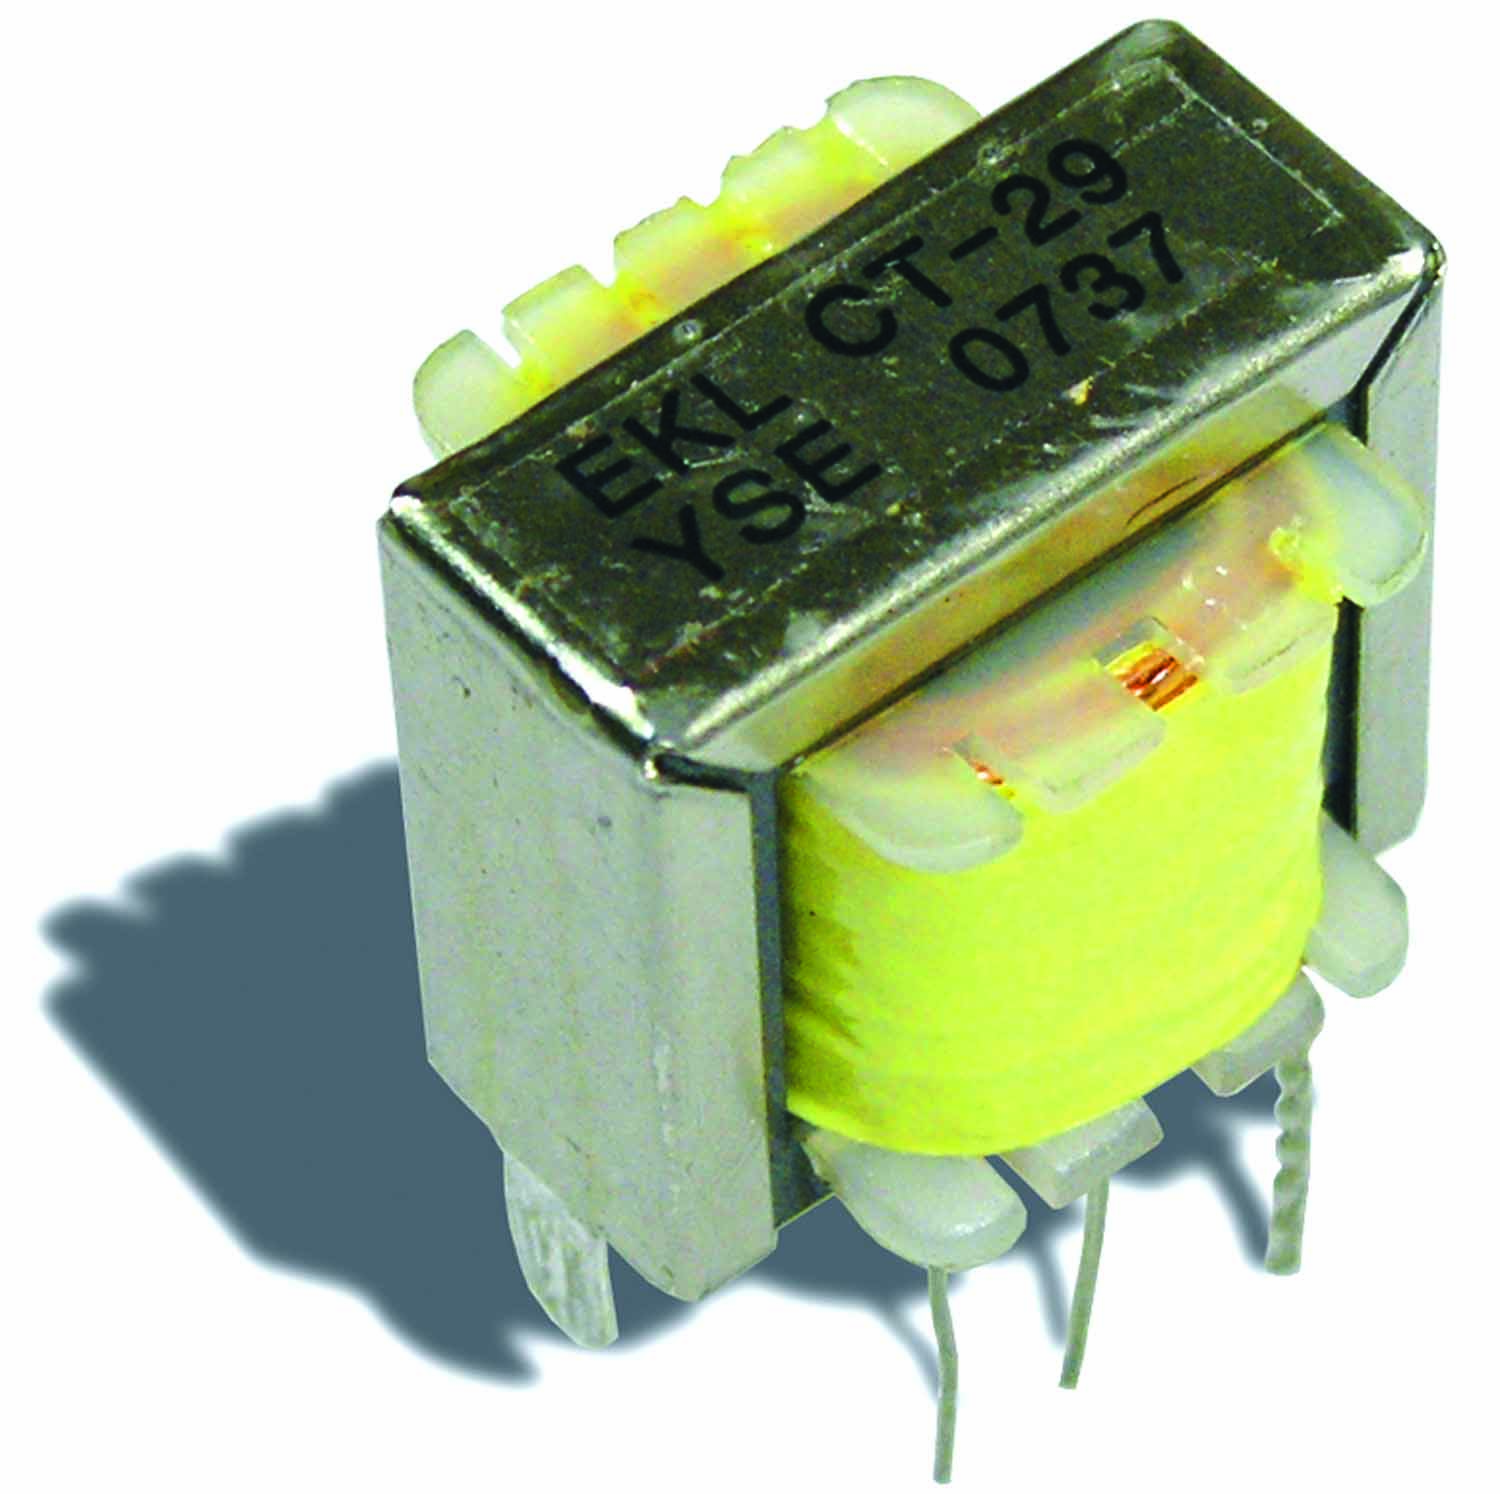 CT29 - EKL Audio Transformer For Cobra C25 / C29 Radios